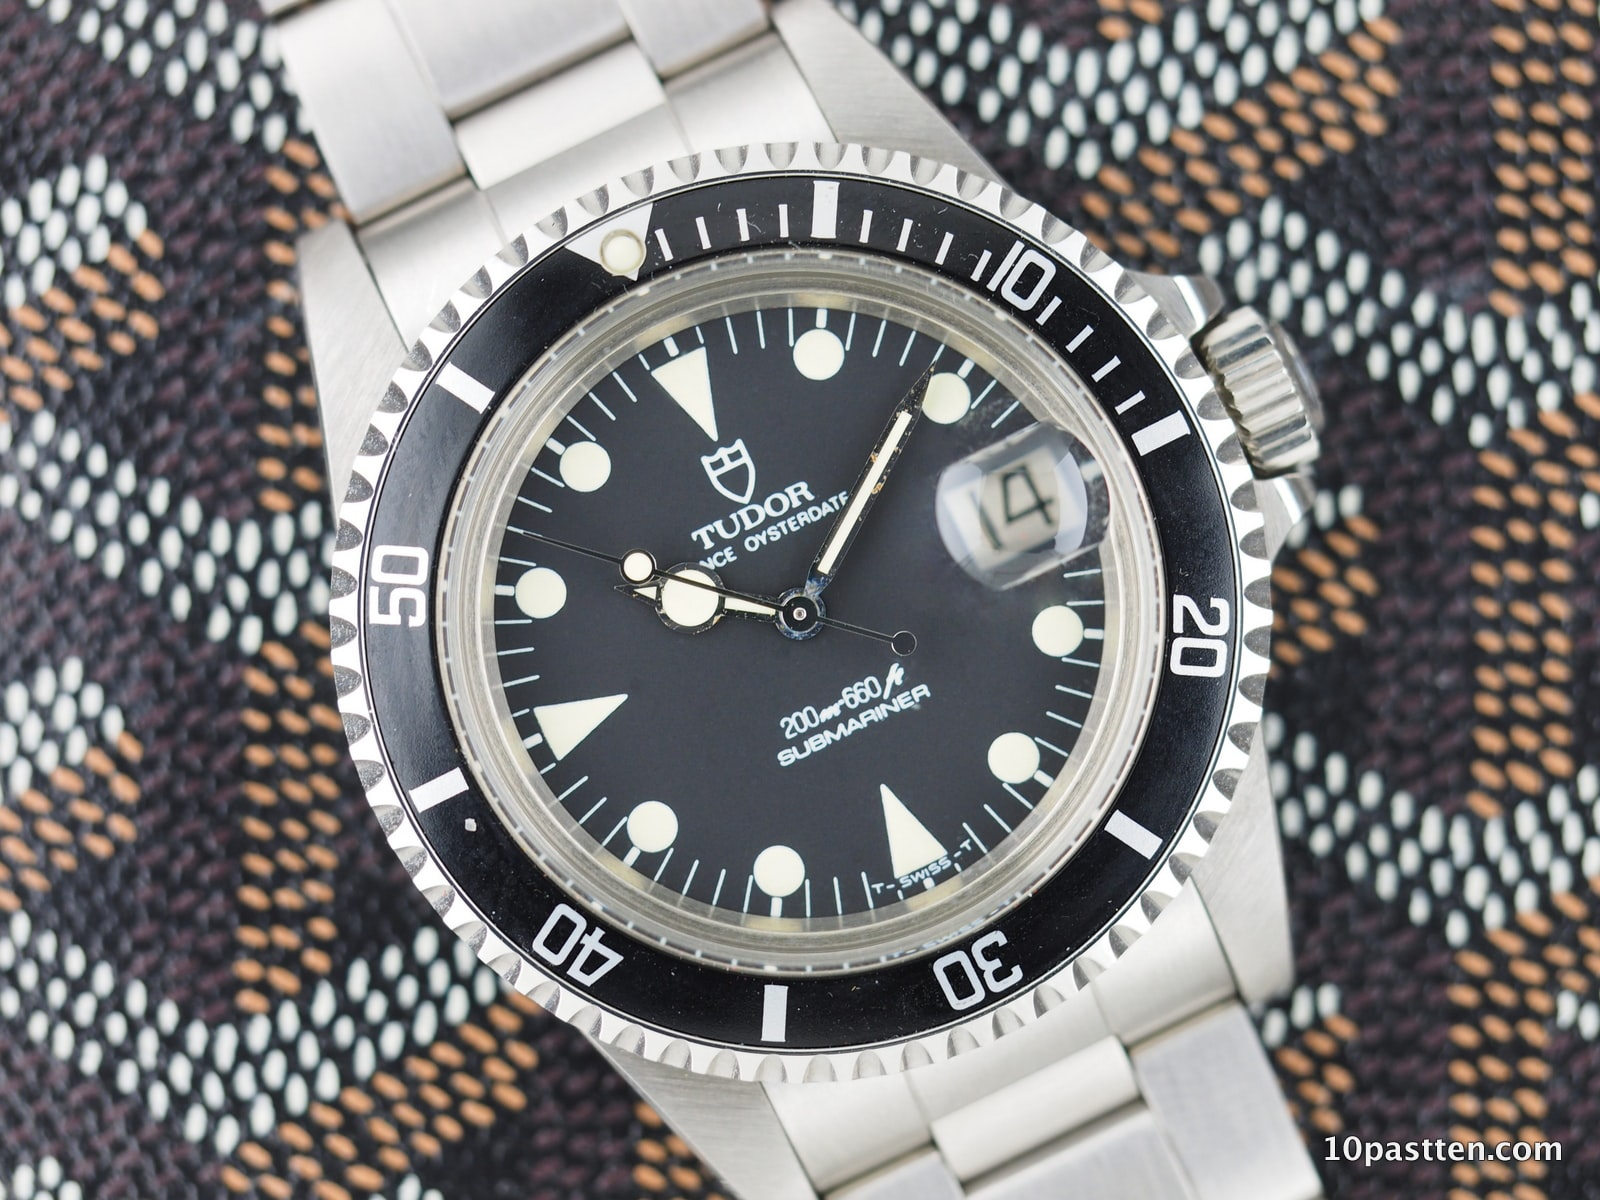 Tudor Submariner 76100 Bring a Loupe: A Tudor Submariner 76100, An Oversized Longines Calatrava 5559, A Heuer Skipper 7764, And More Bring a Loupe: A Tudor Submariner 76100, An Oversized Longines Calatrava 5559, A Heuer Skipper 7764, And More Tudor 76100